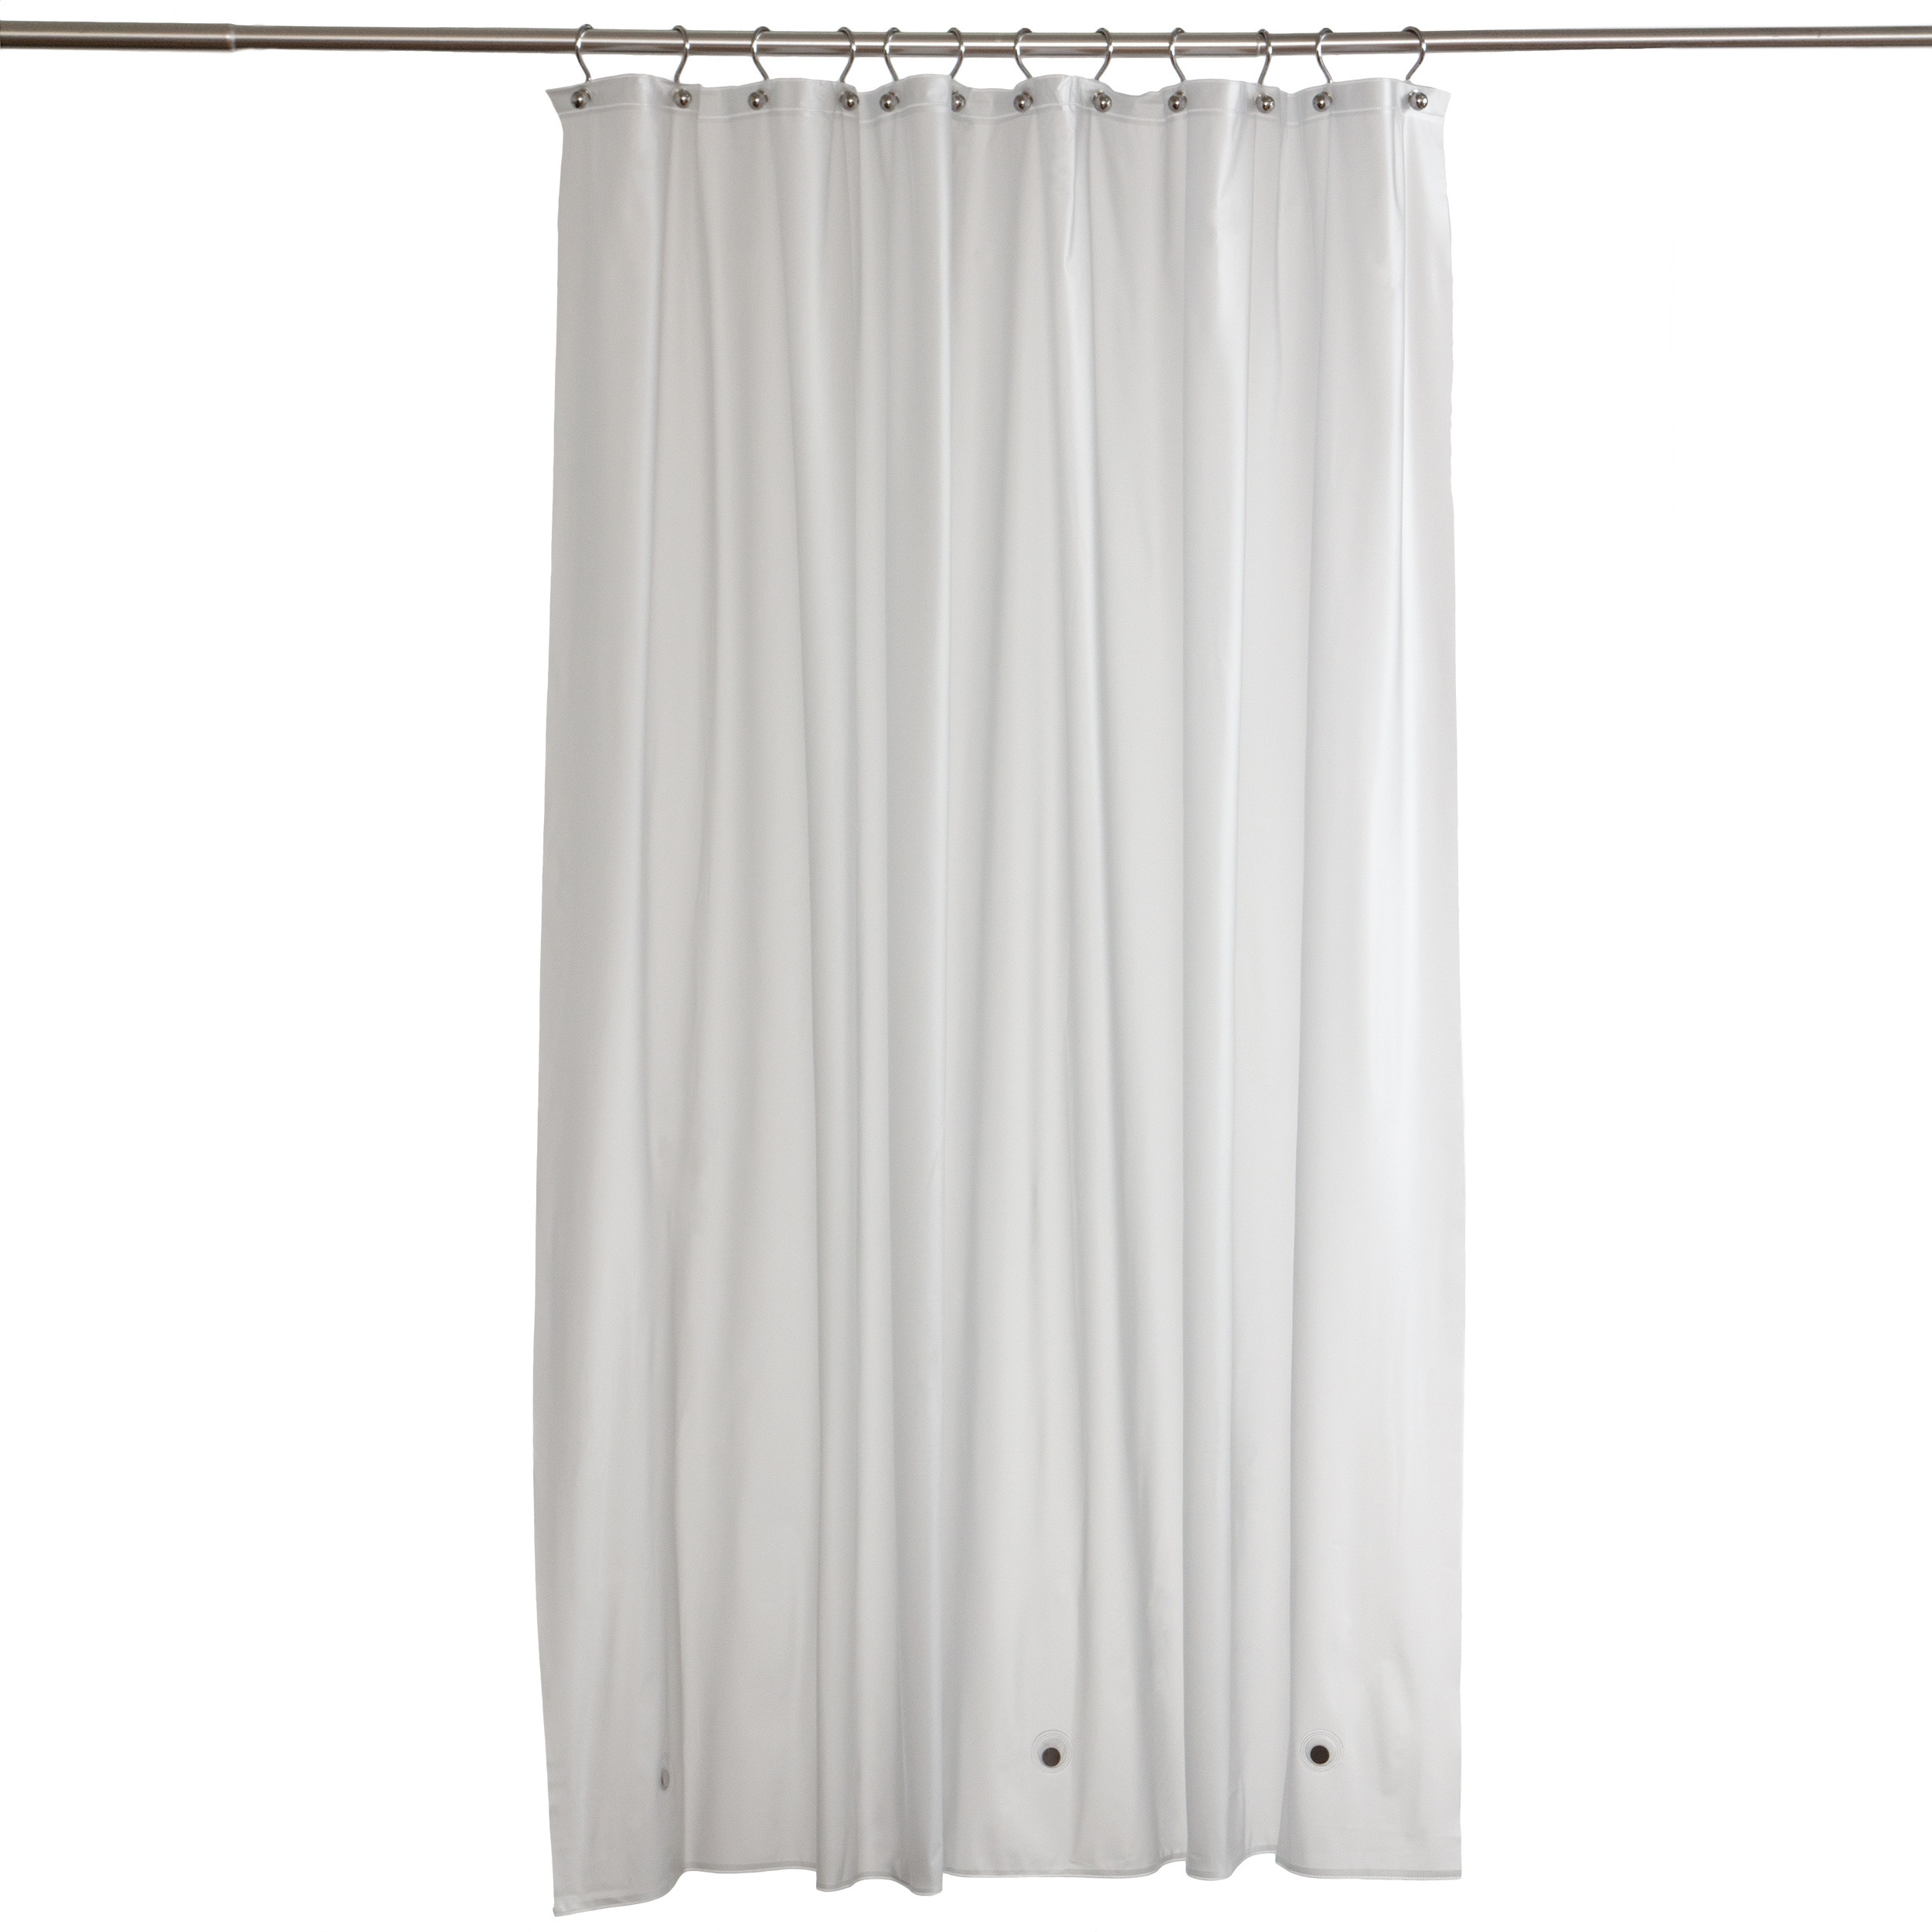 Commercial Grade Shower Curtains Shower Curtains Rods Covoc Corporation Heavy Duty Navy Shower